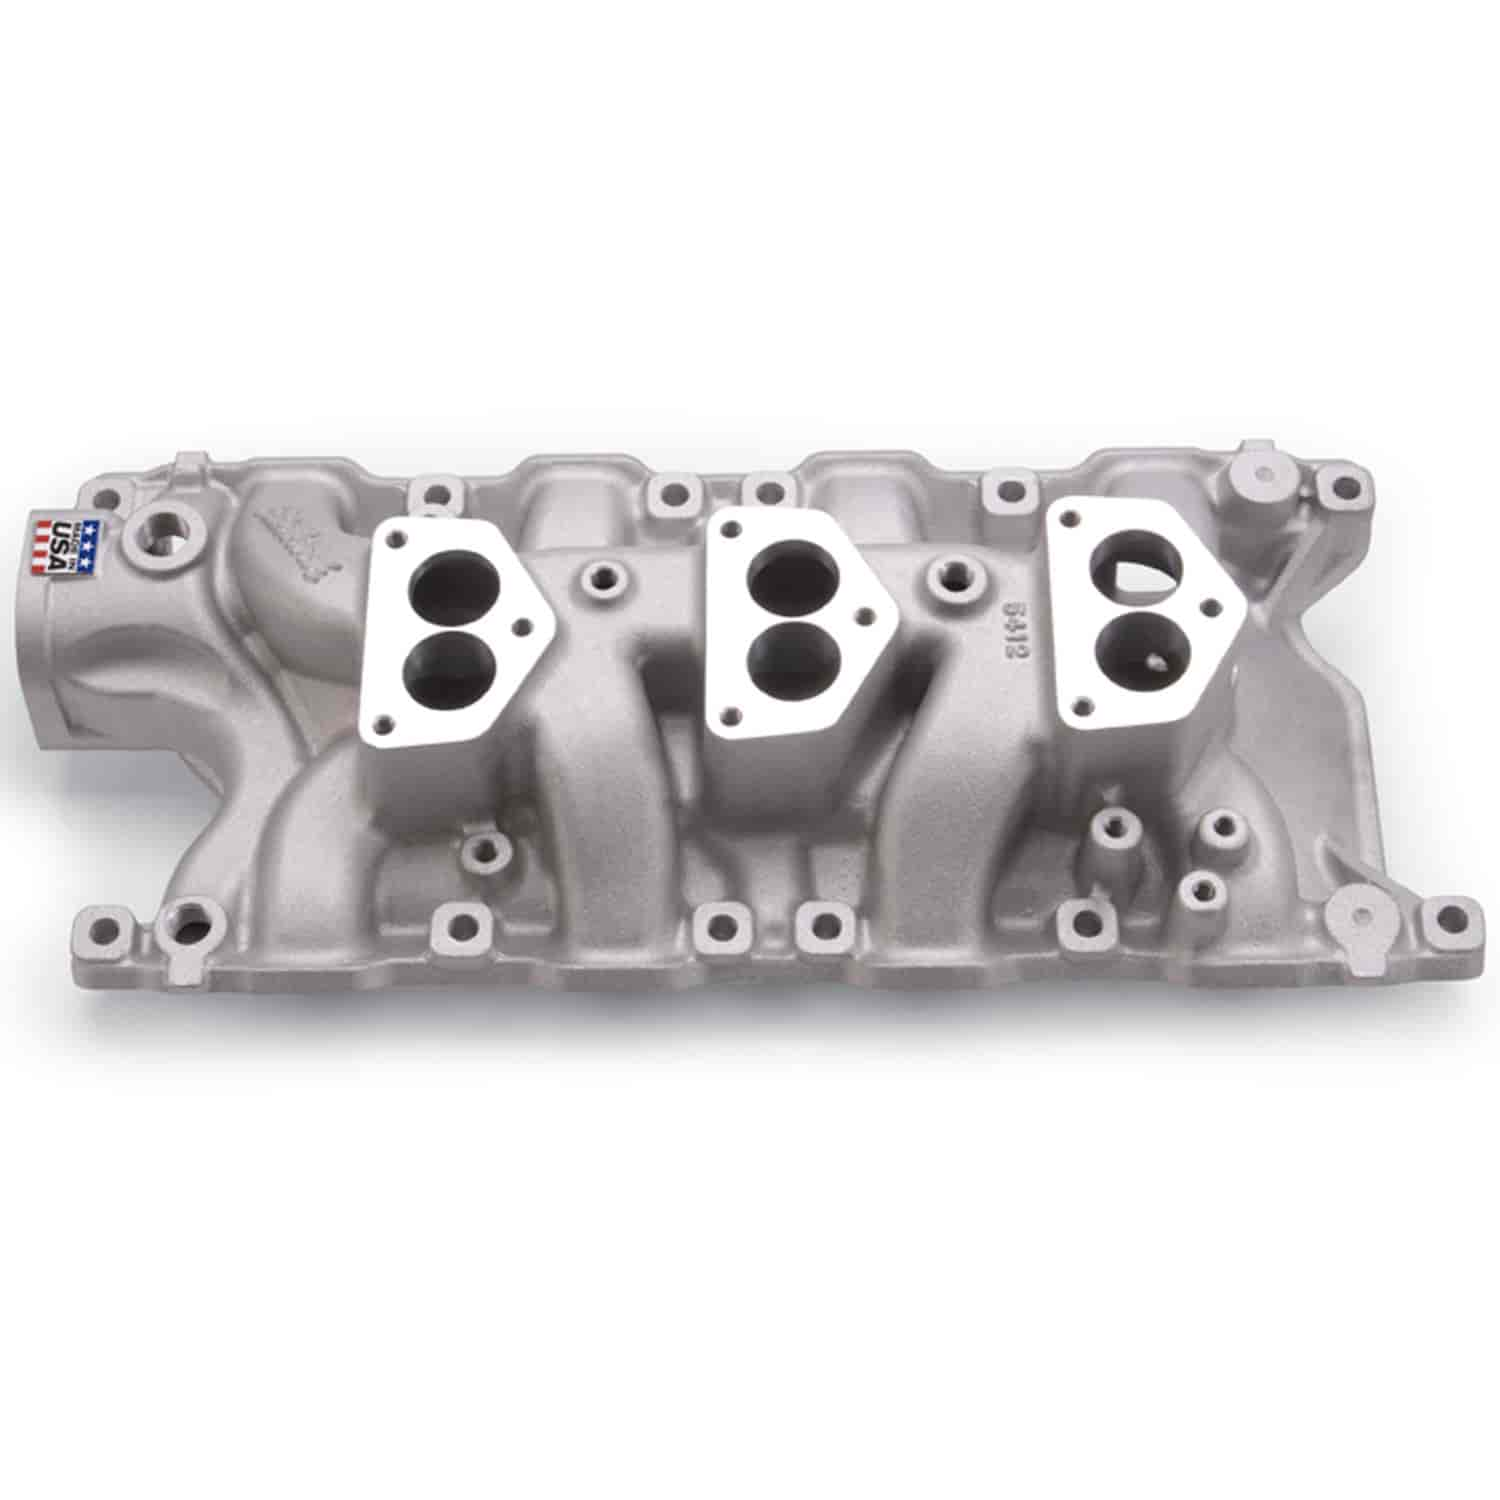 Edelbrock 5412 - Edelbrock Performer Manifolds for Ford